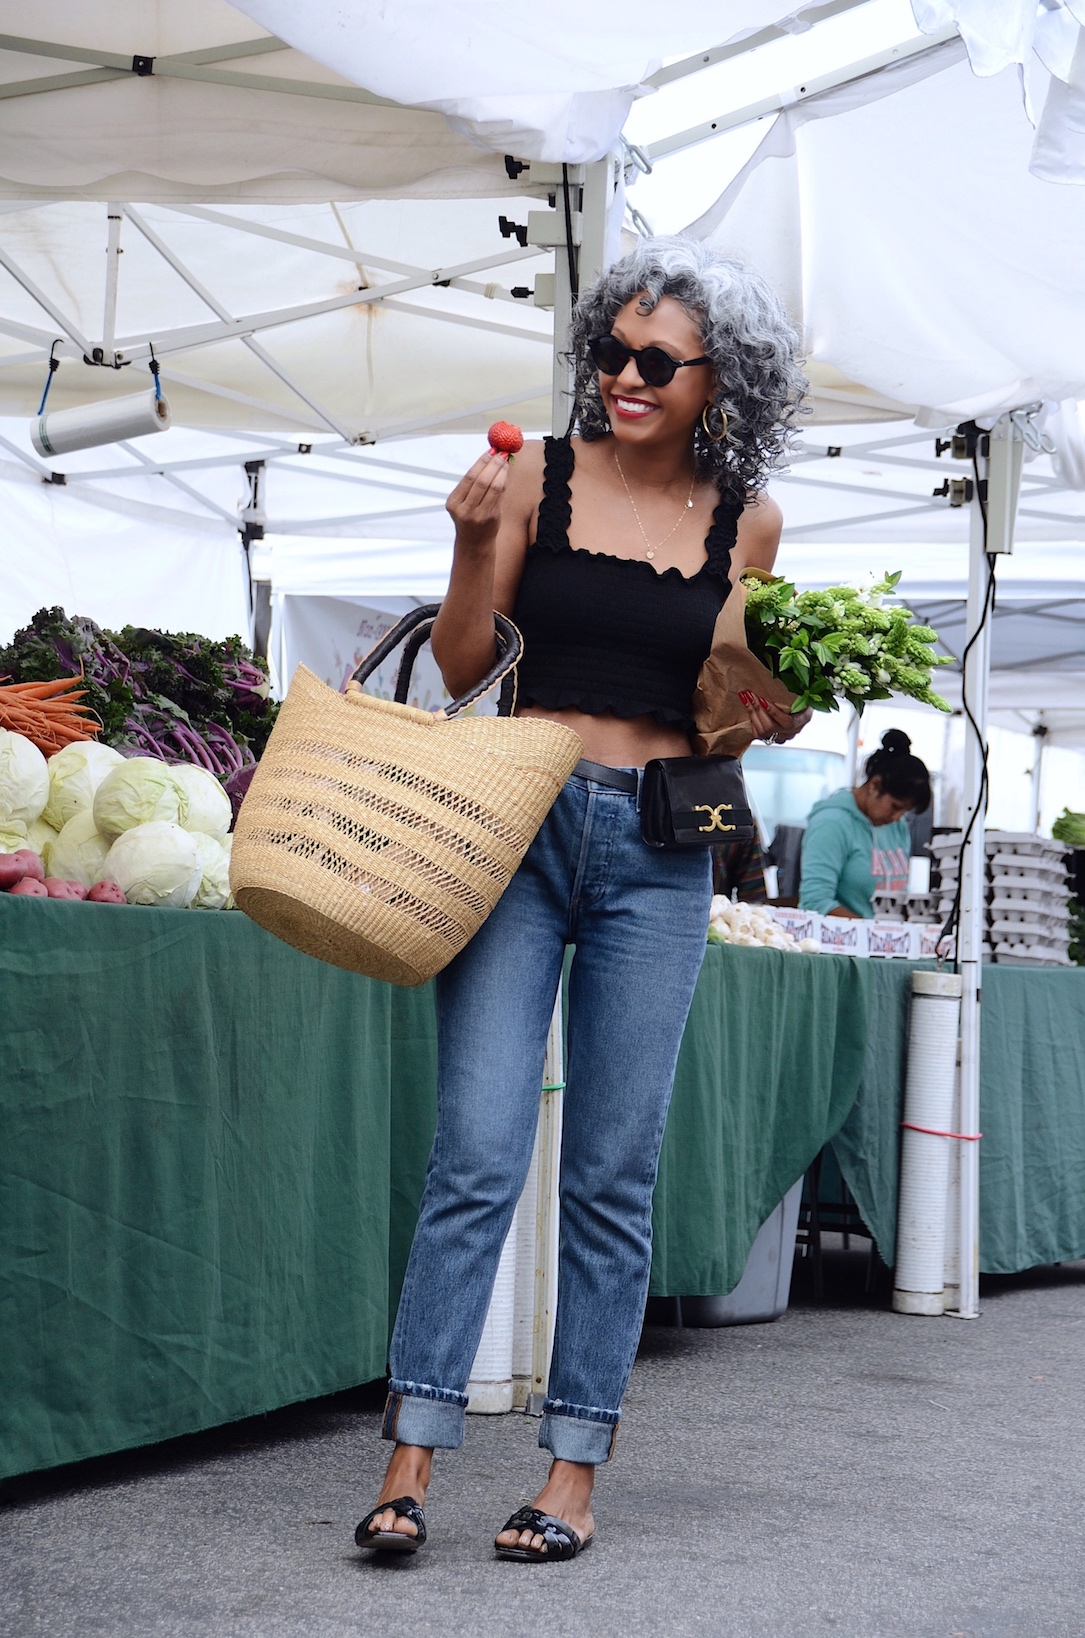 Farmer's market basket and outfit // A Week Of Sophisticated Slow Fashion Outfits With Tennille Murphy From The Tennille Life on The Good Trade